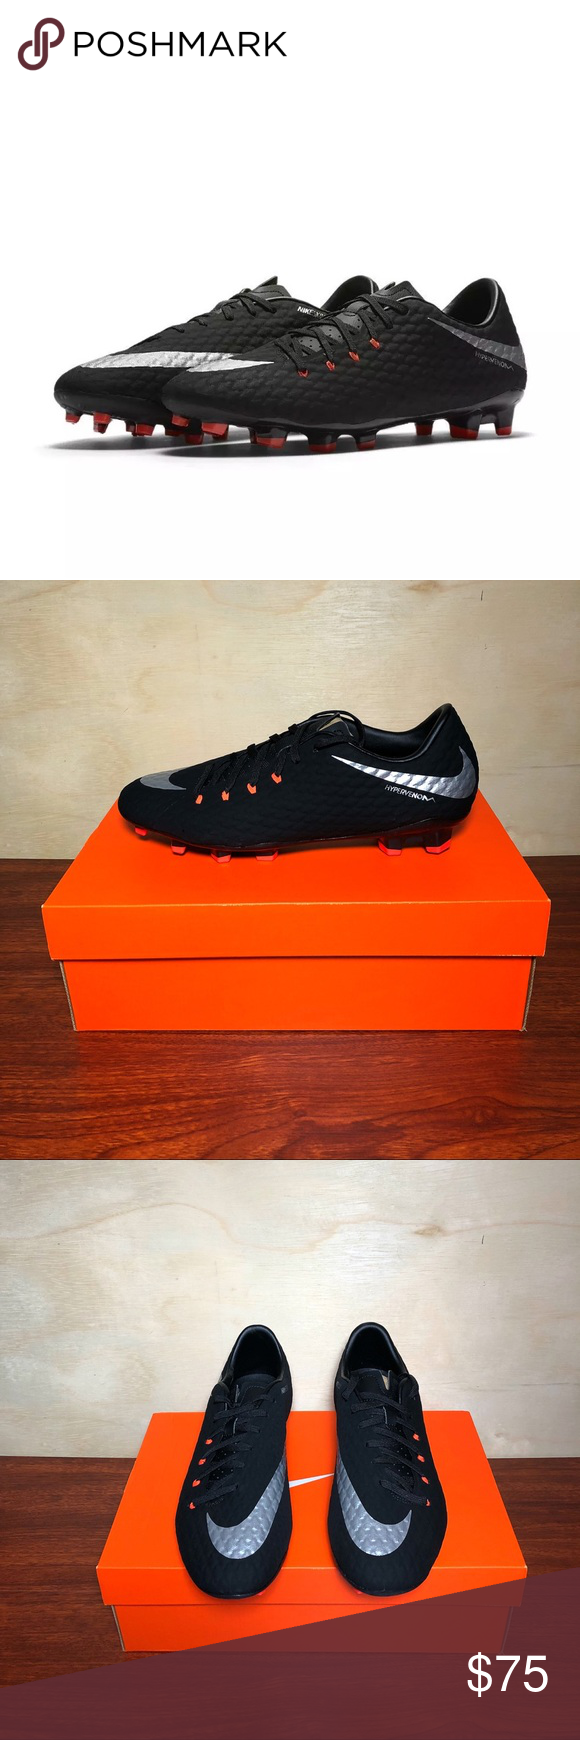 4b52f189ee5a Men s Nike Hypervenom Phelon III FG Soccer Cleats These are brand new in original  shoe box! 100% authentic guaranteed. Many happy customers! Fast shipping!